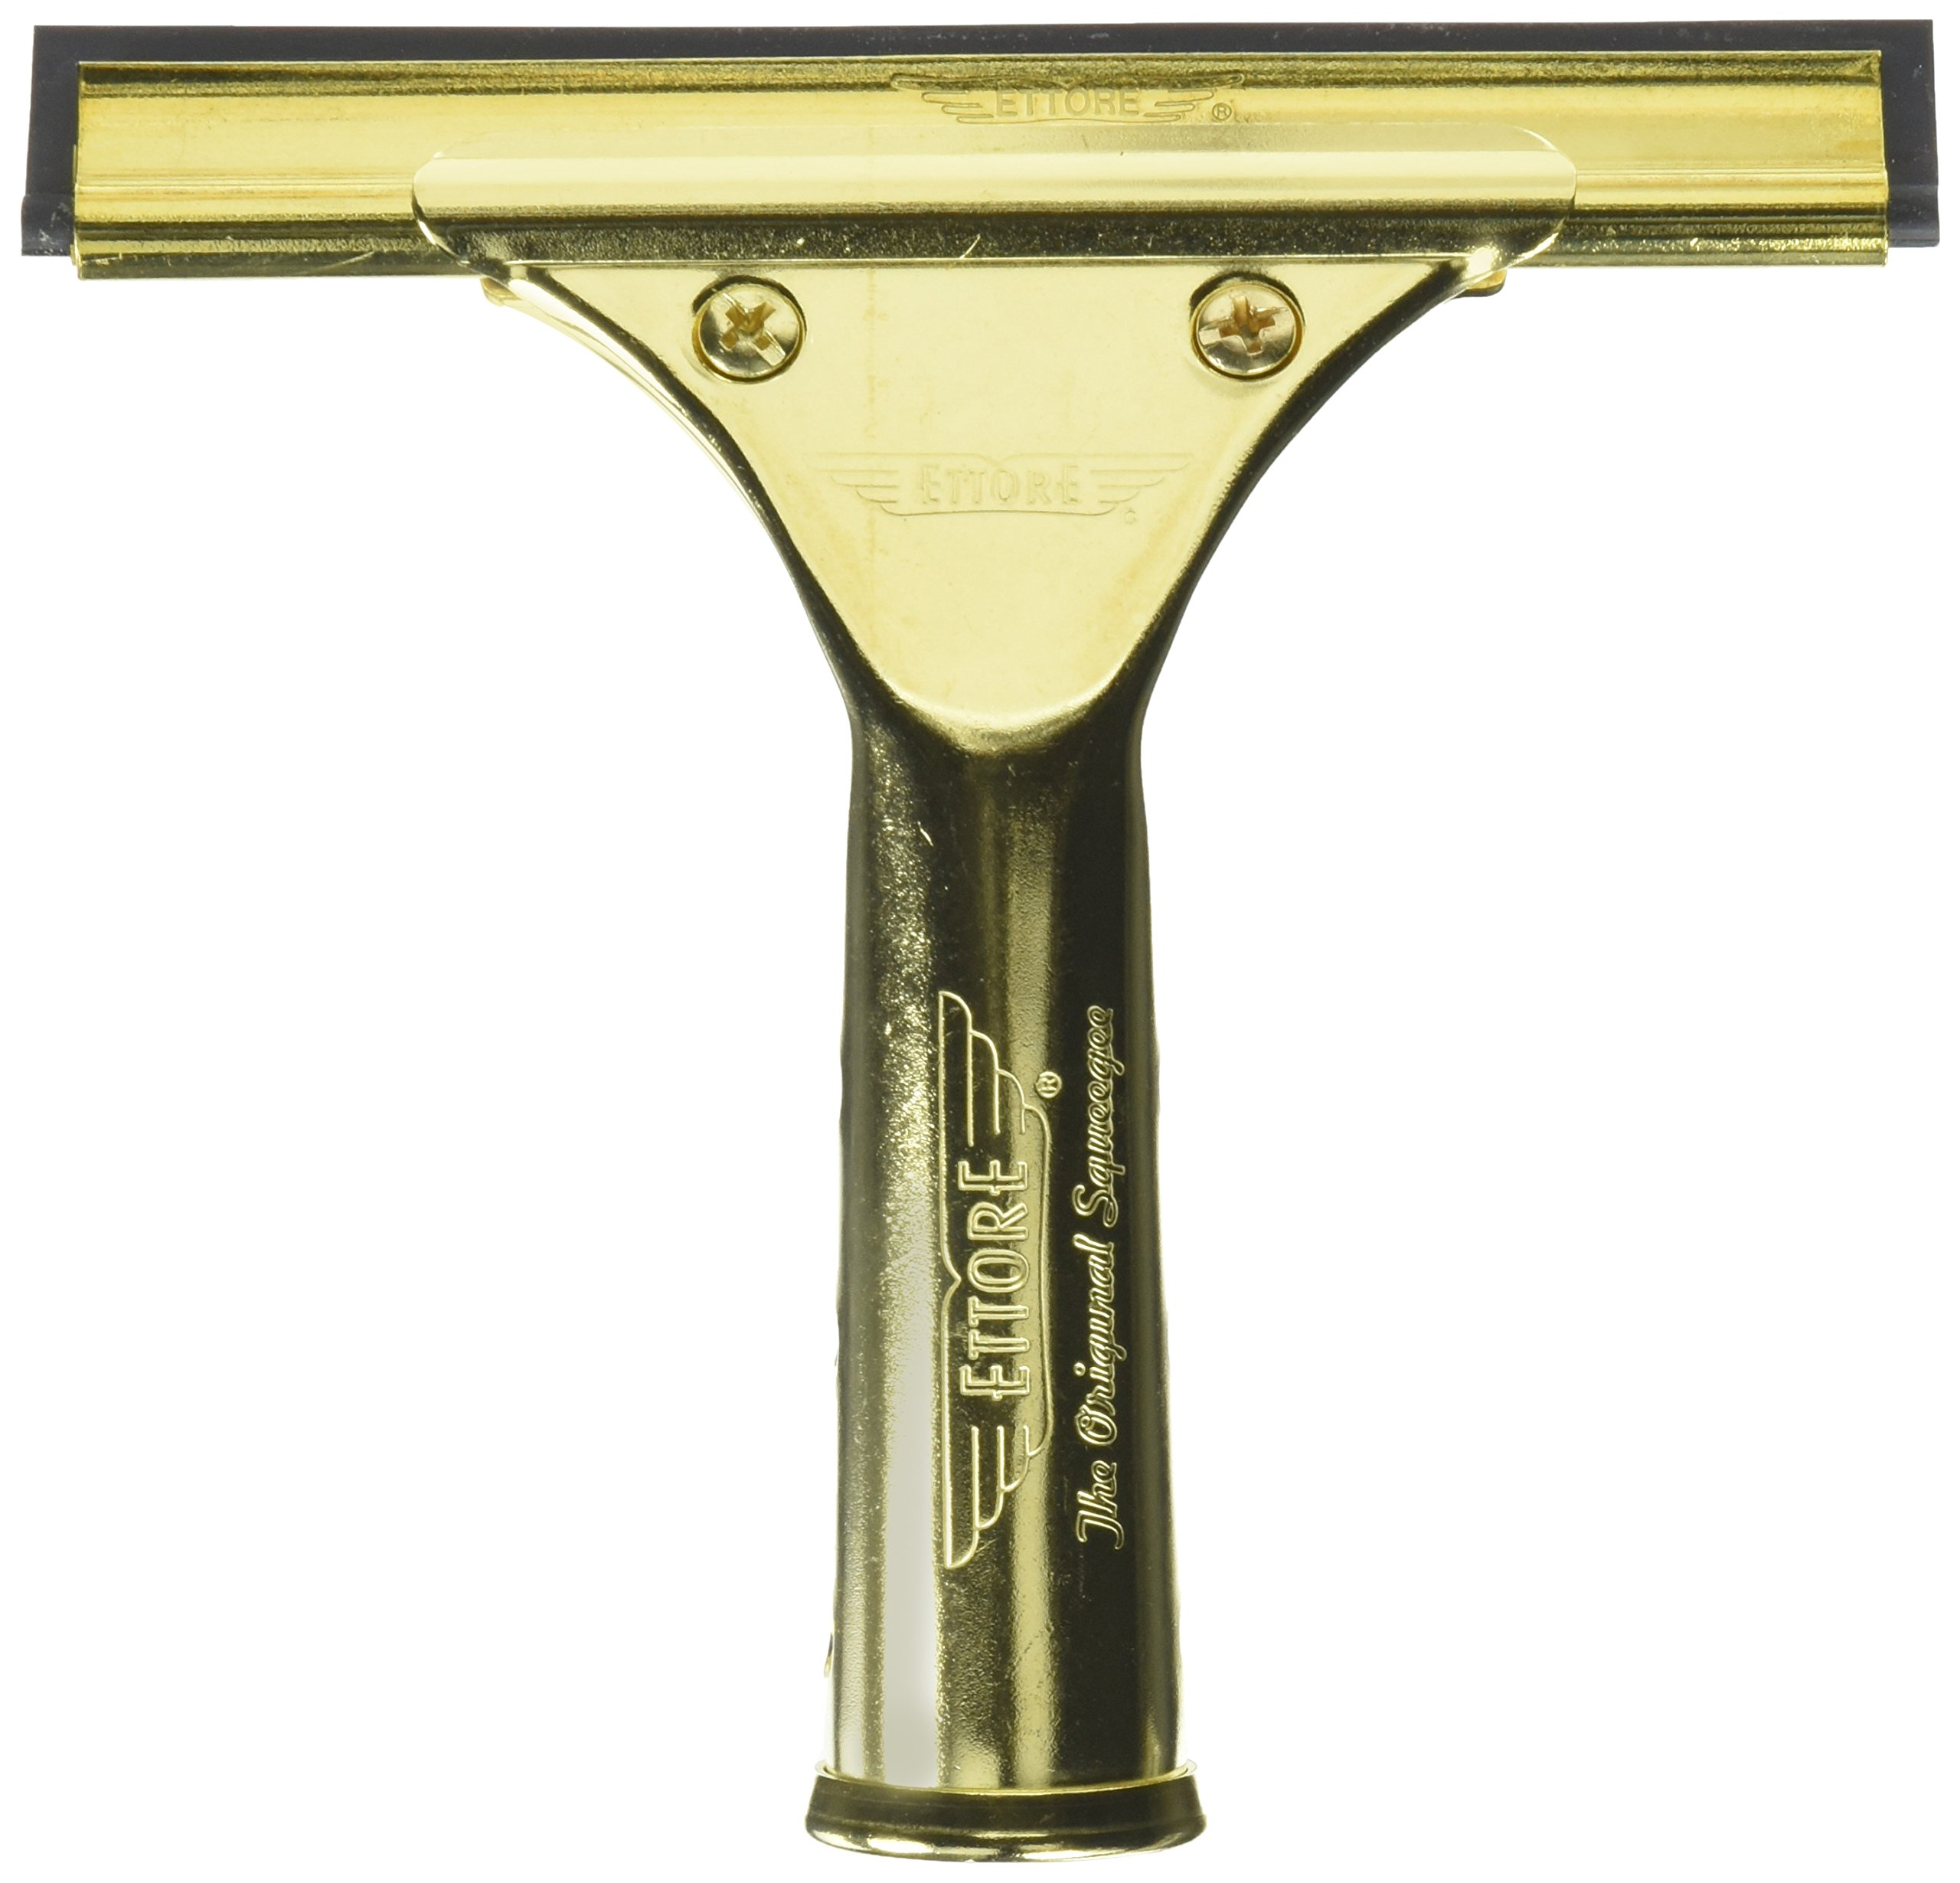 Ettore 10012 Solid Brass Squeegee, 6-Inch